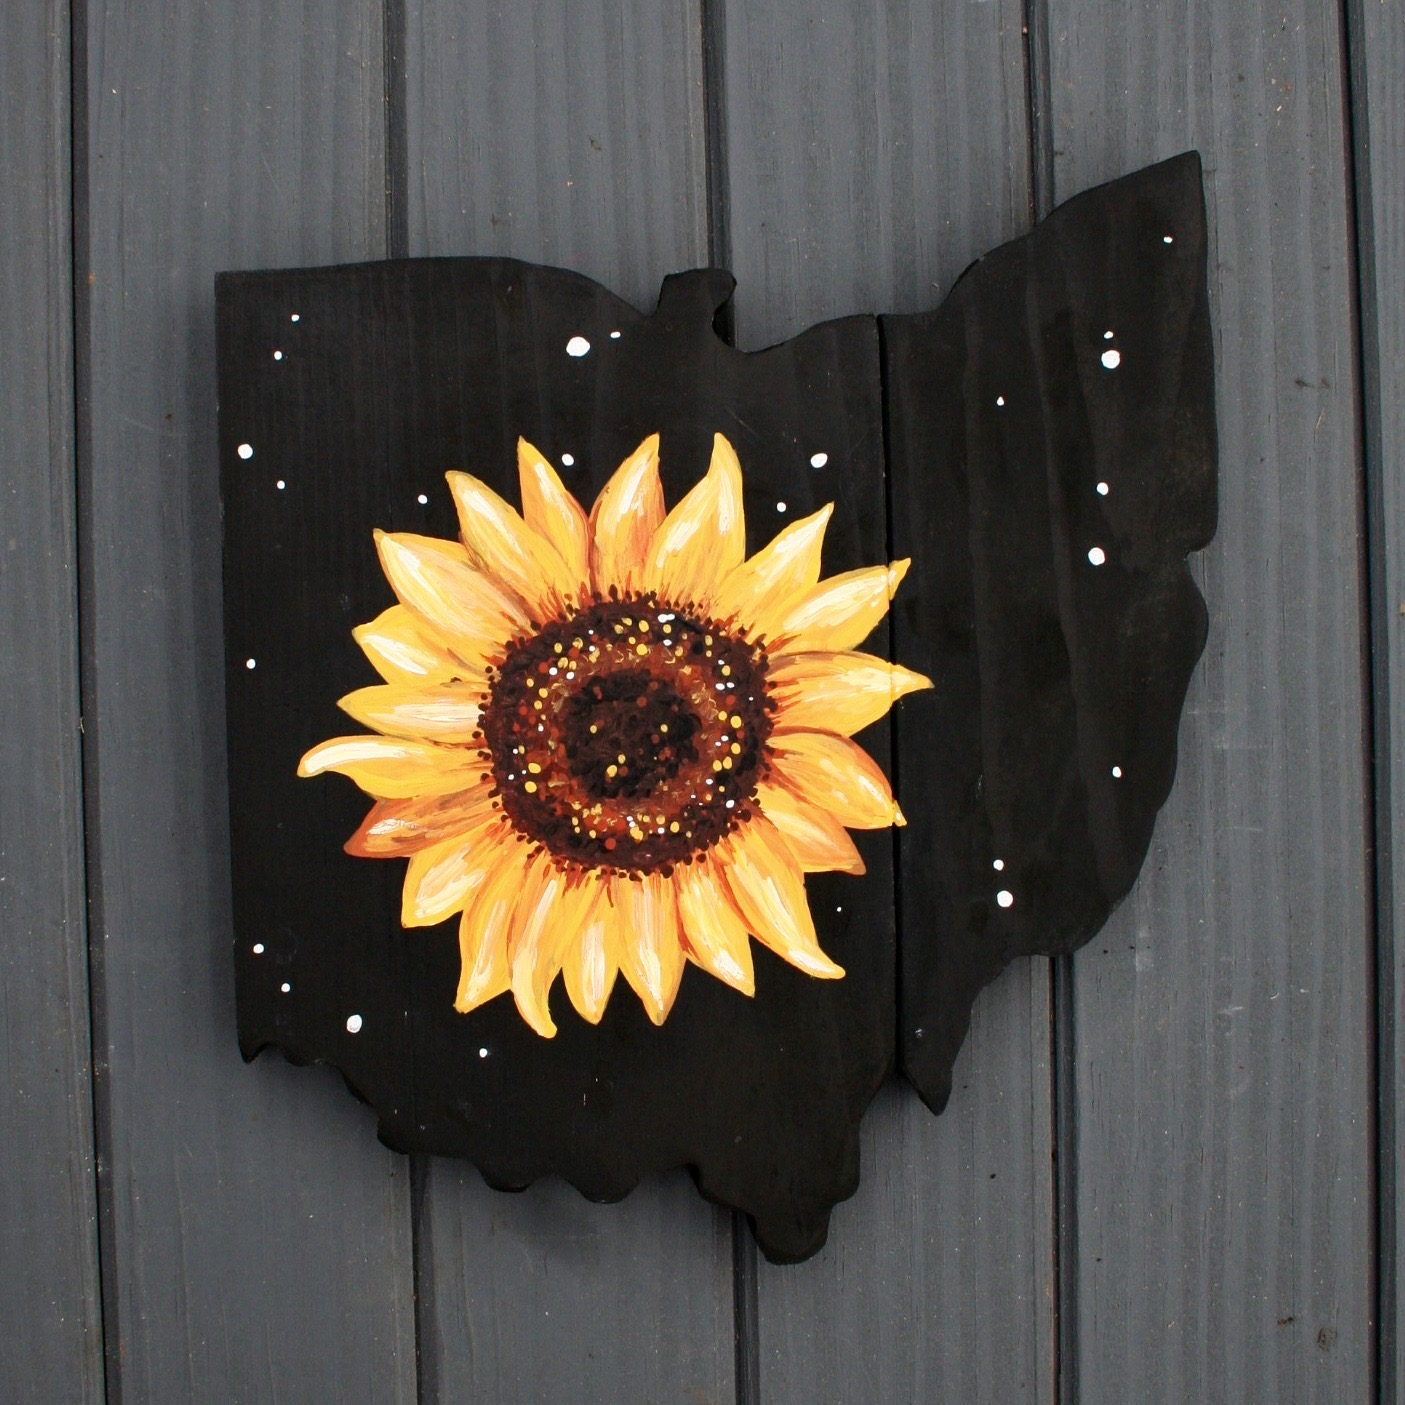 Original painted Sunflower on an ohio plaque